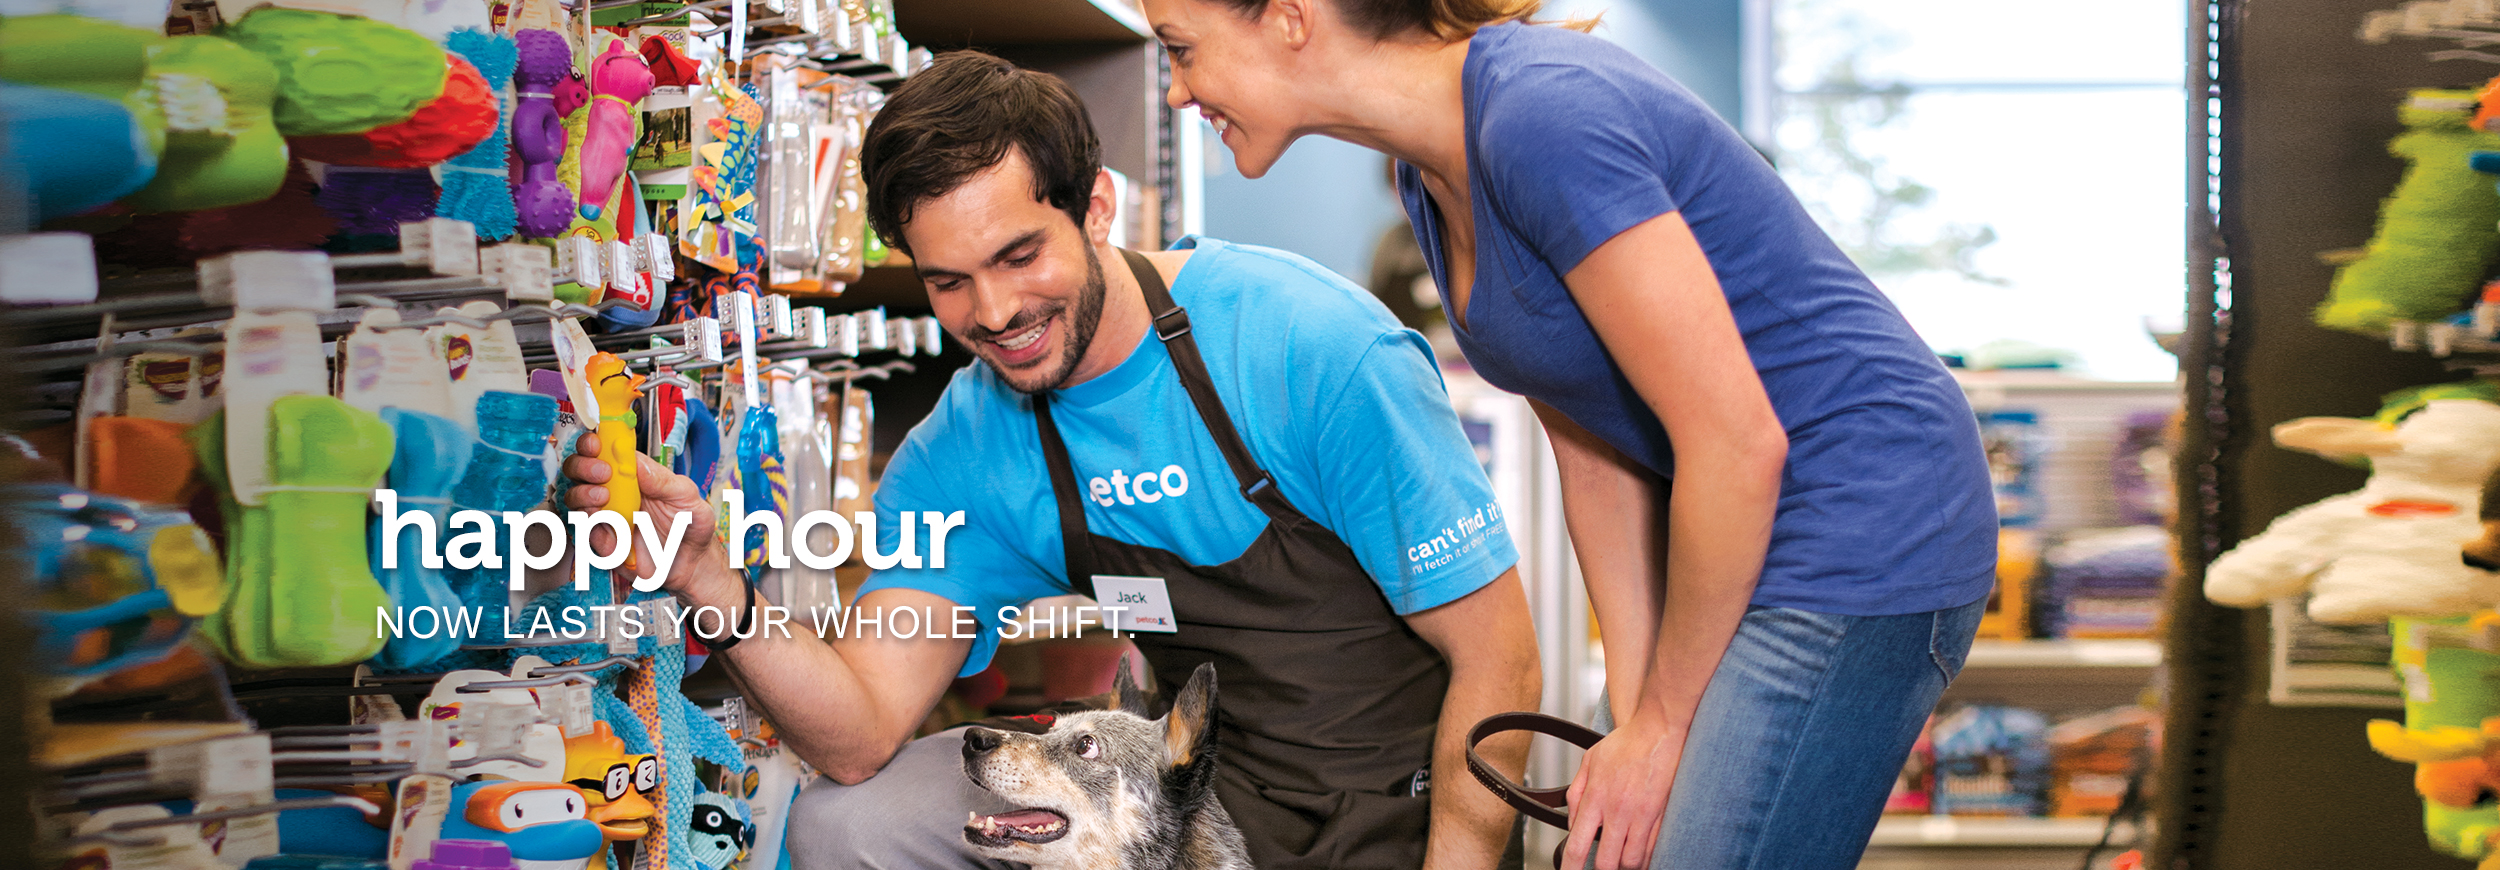 Our Career Areas – Petco Careers